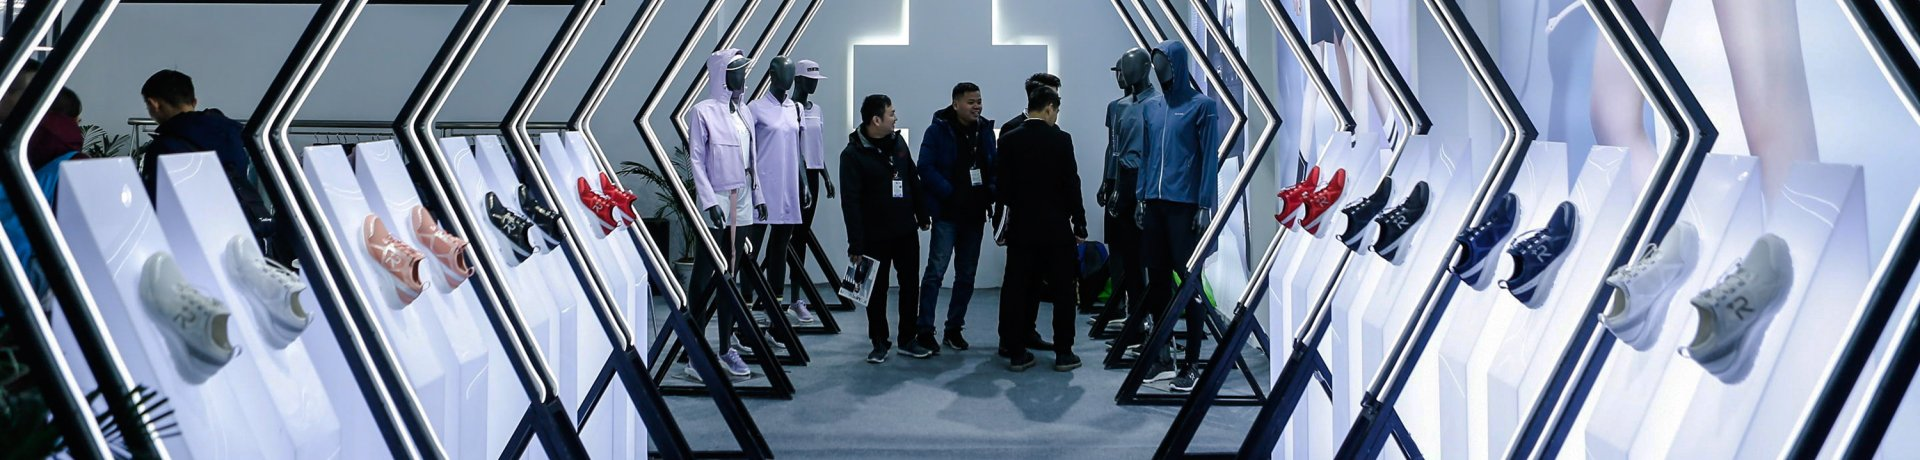 Presentation of sports shoes at ISPO Beijing